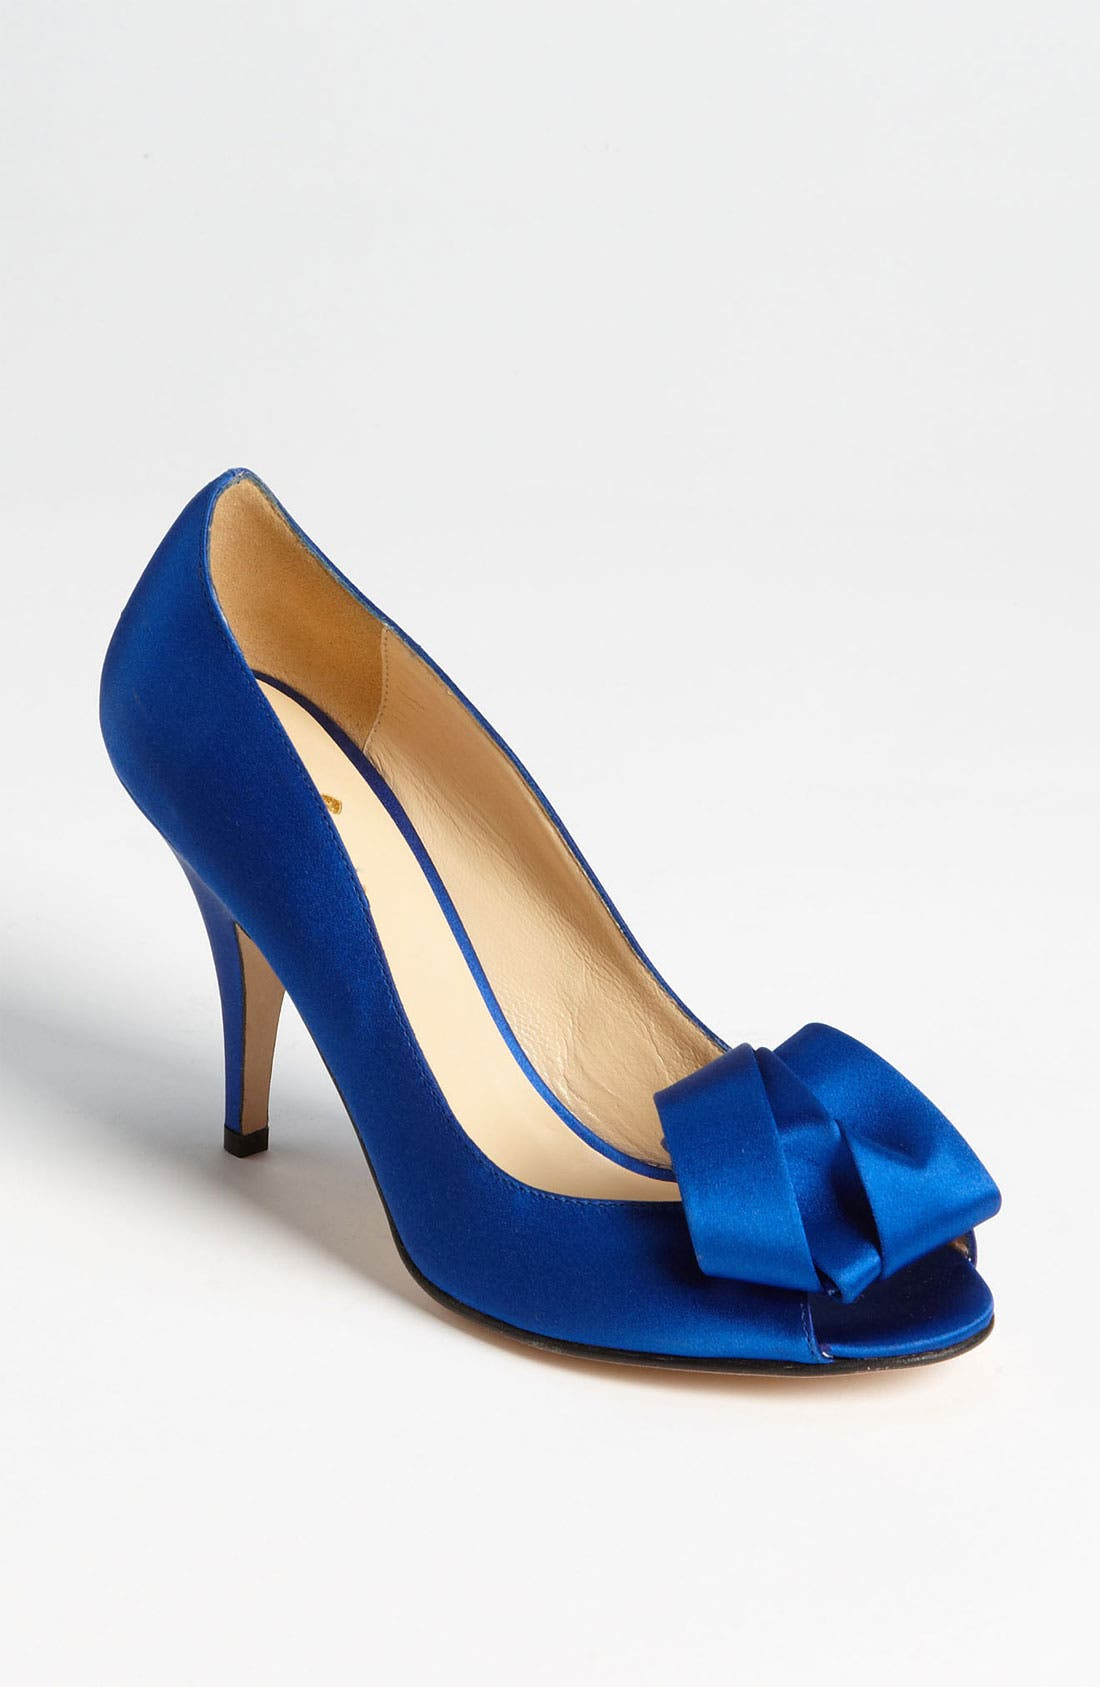 Main Image - kate spade new york 'clarice' pump